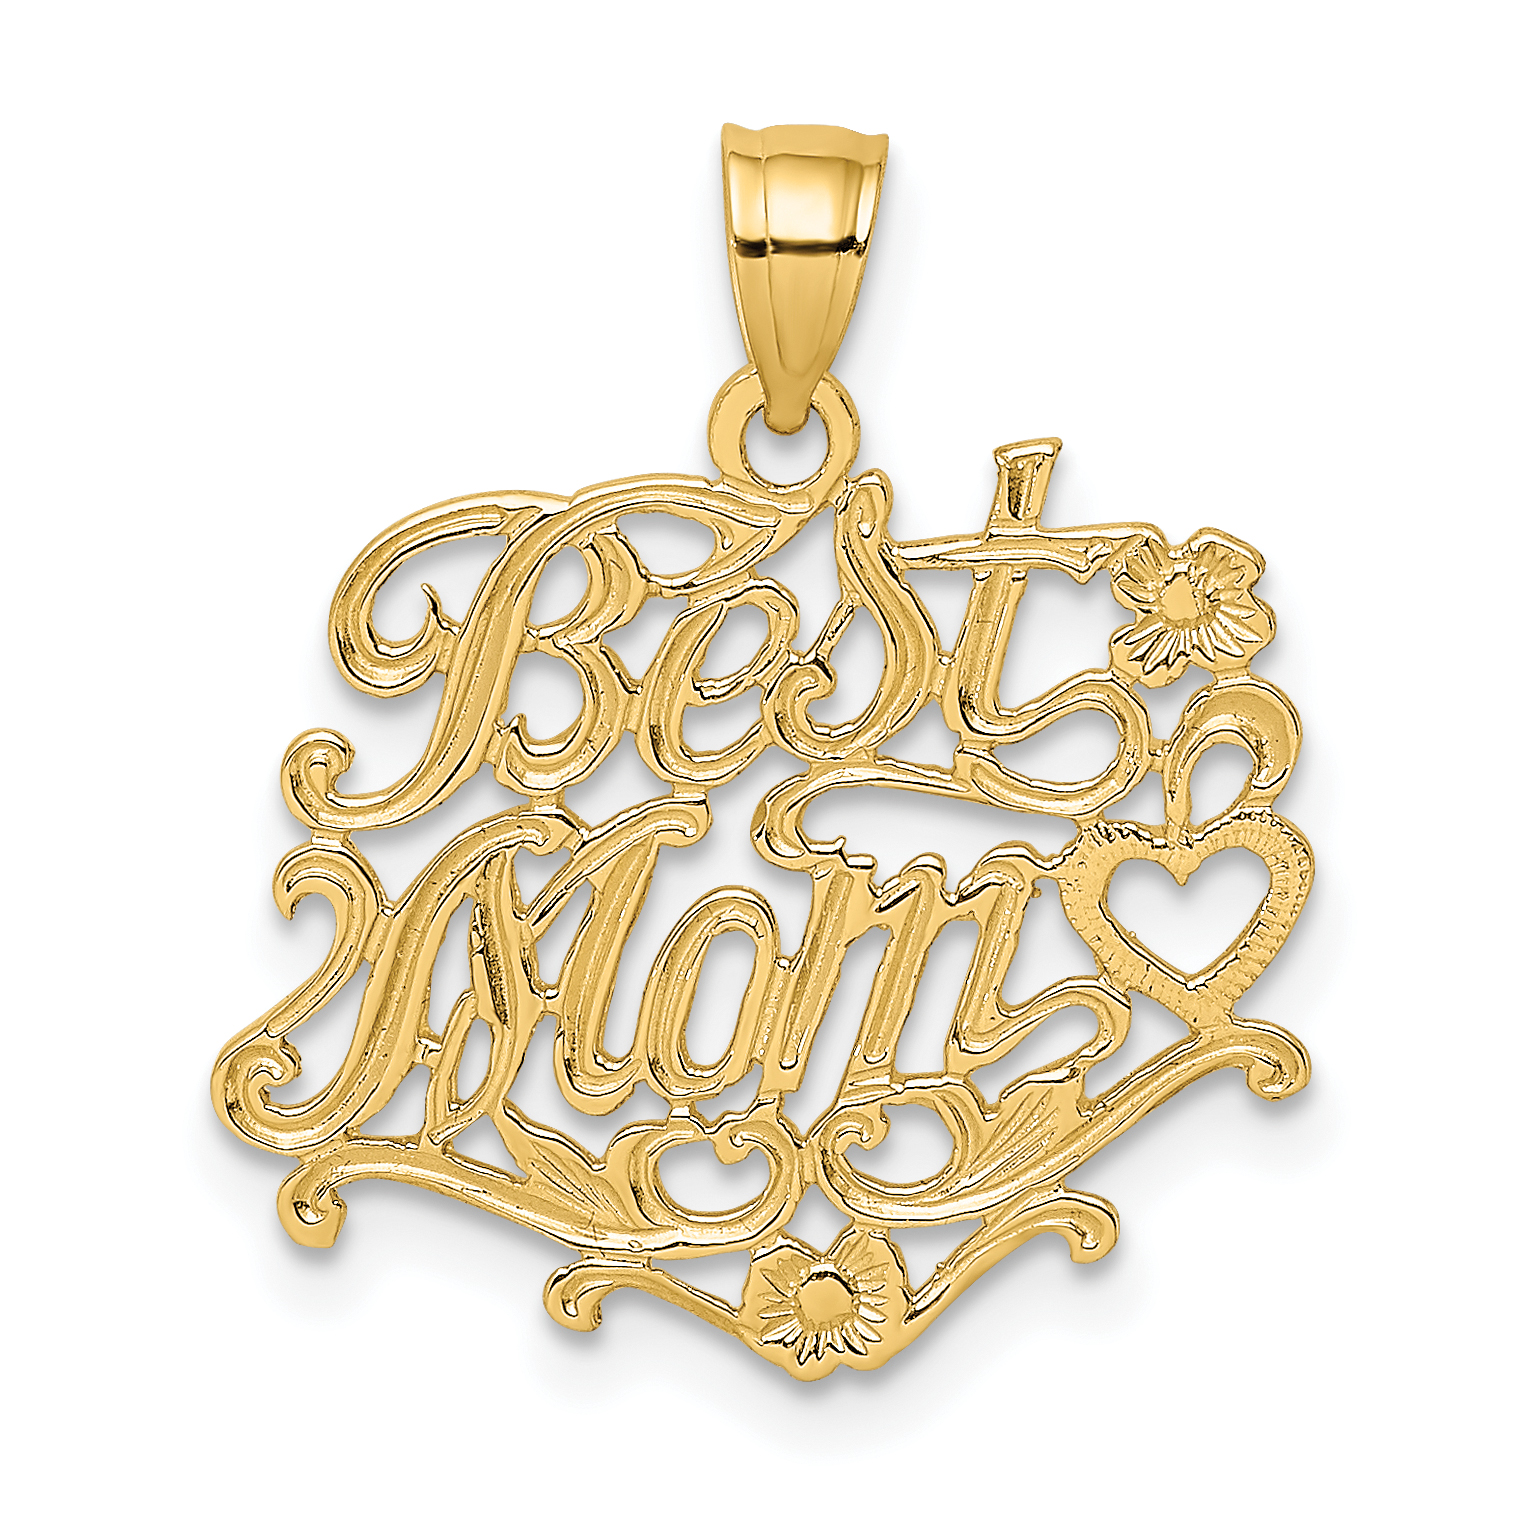 10k Yellow Gold Best Mom Pendant Charm Necklace Talking Fine Jewelry Gifts For Women For Her